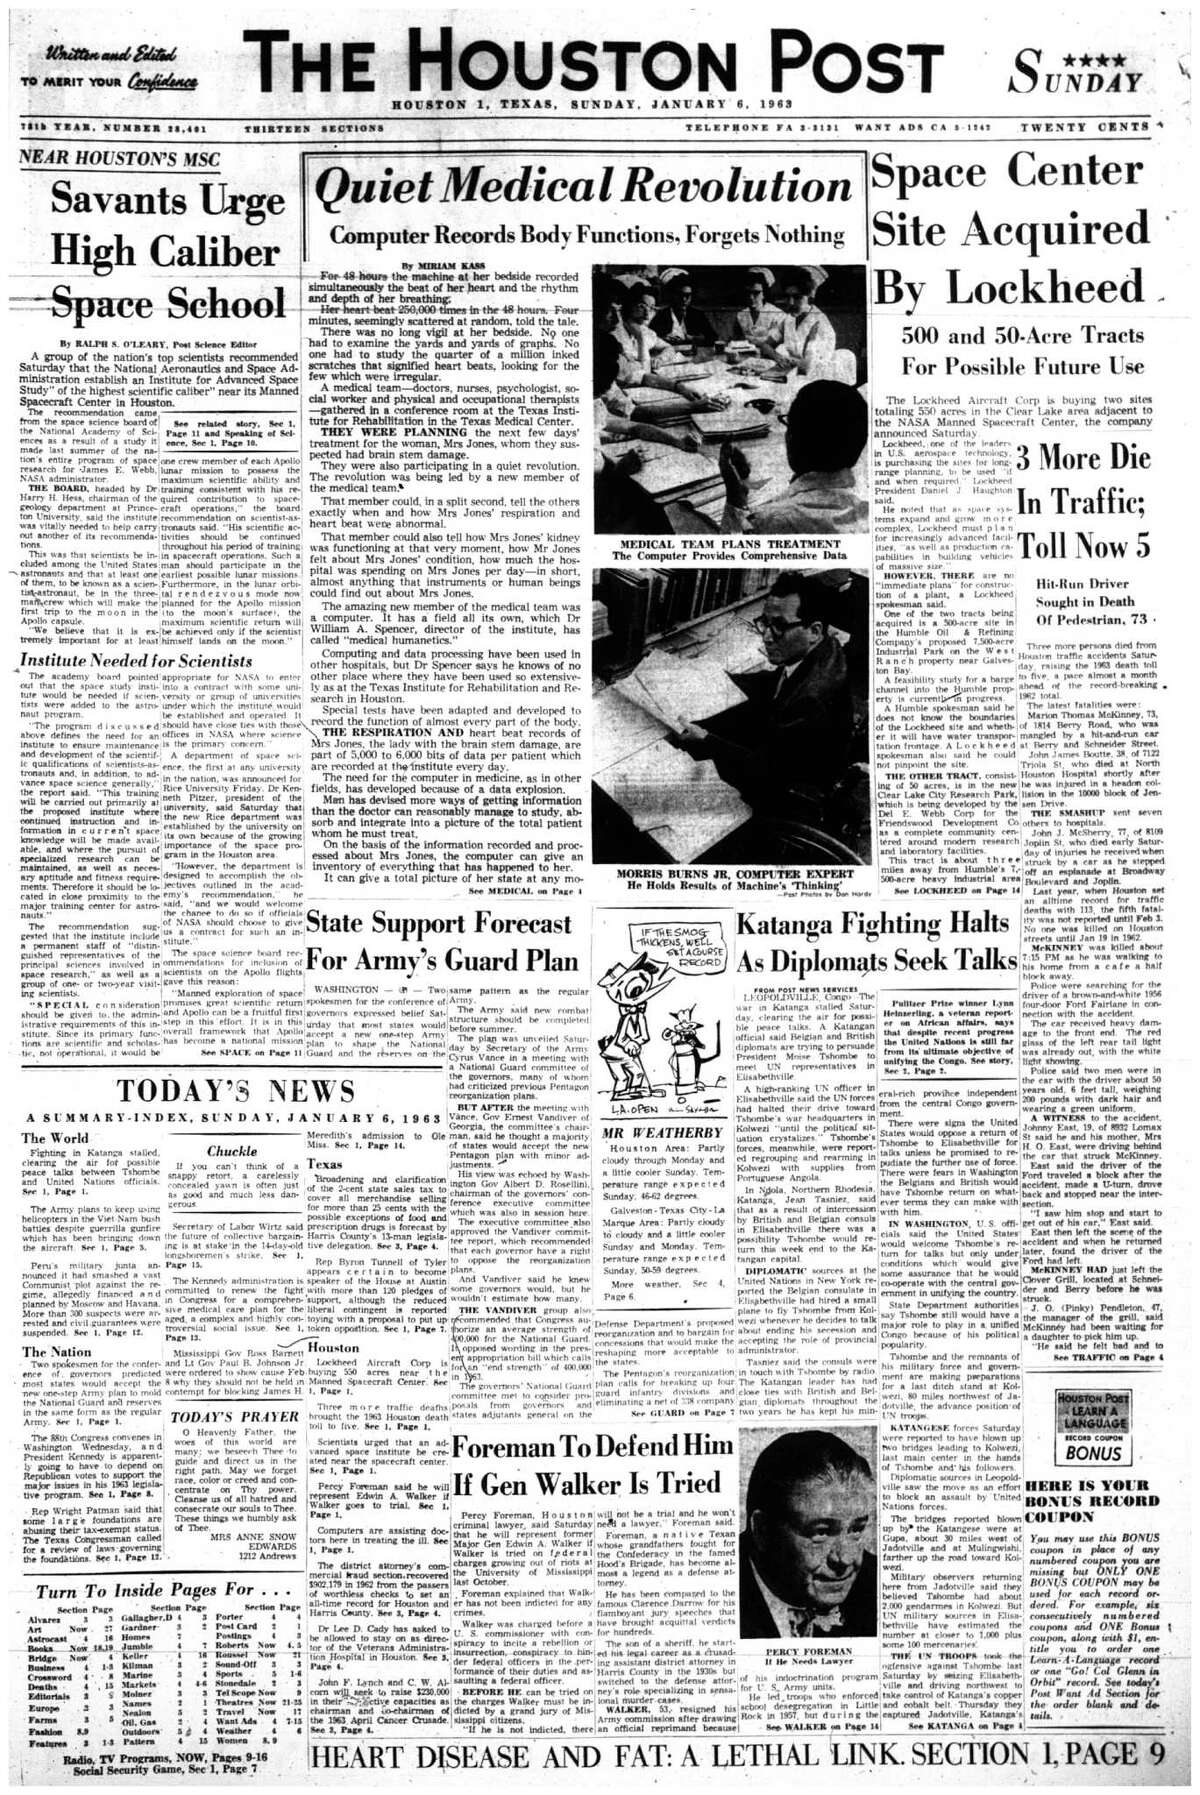 Houston Post front page (HISTORIC) - January 6, 1963 - section 1, page 1. Quiet Medical Revolution. Computer records Body Functions, Forgets Nothing (Texas Institute for Rehabilitation and Research)